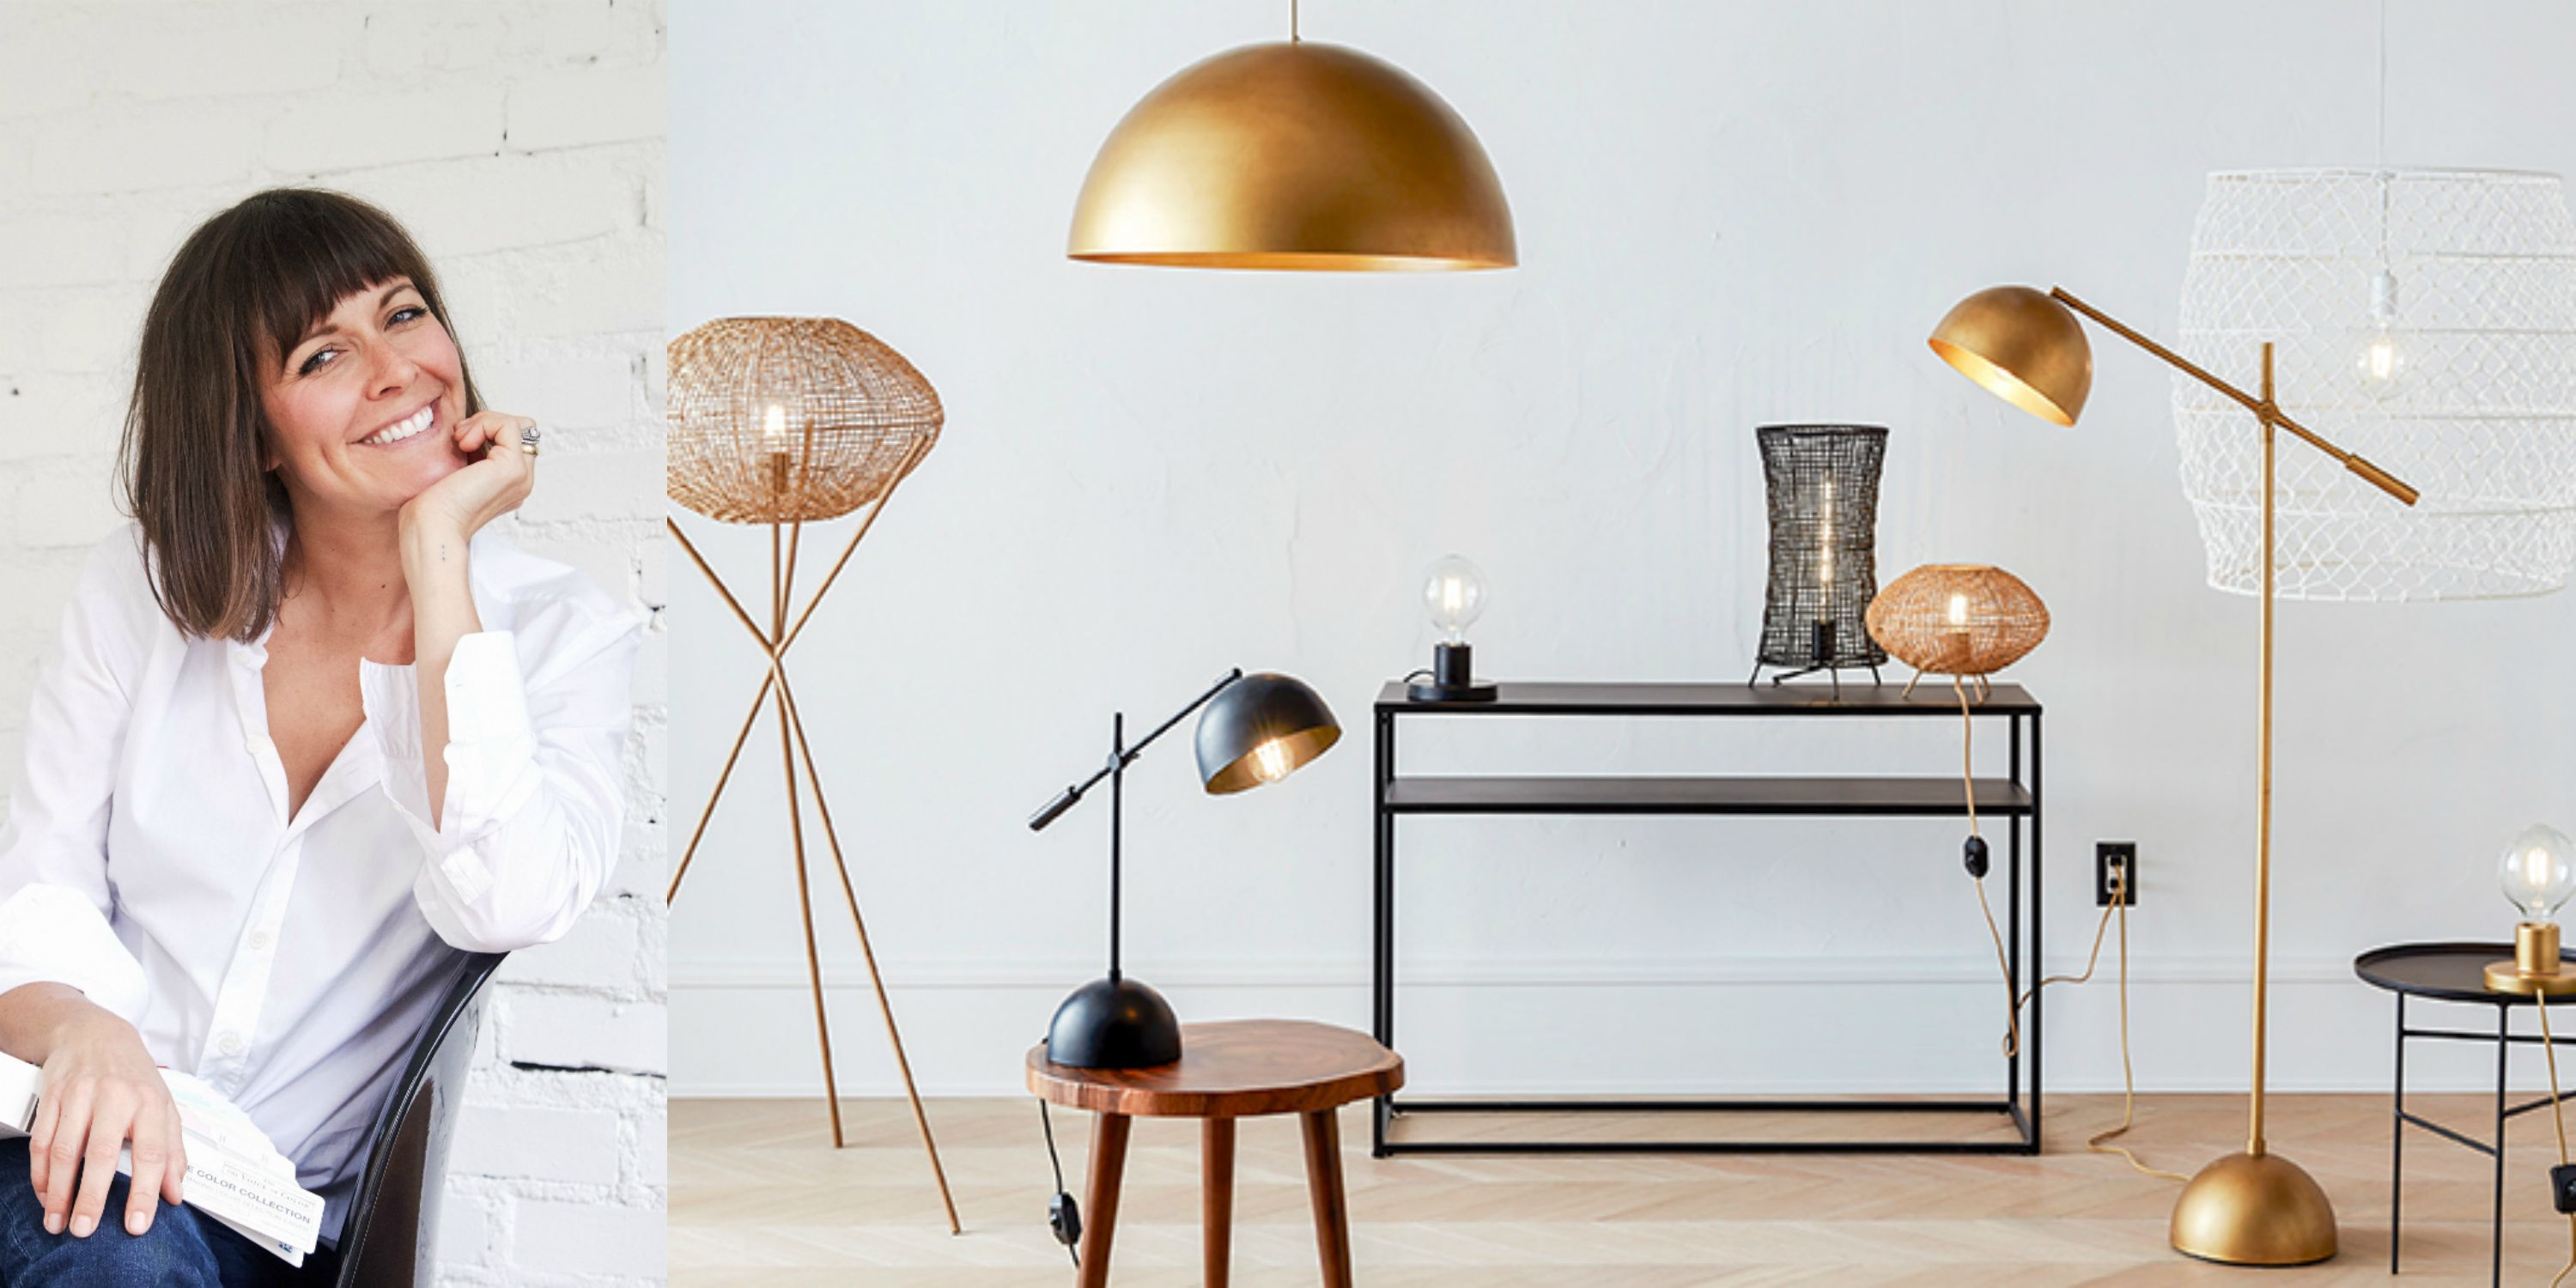 Leanne Ford S New Target Project 62 Lighting Collection Will